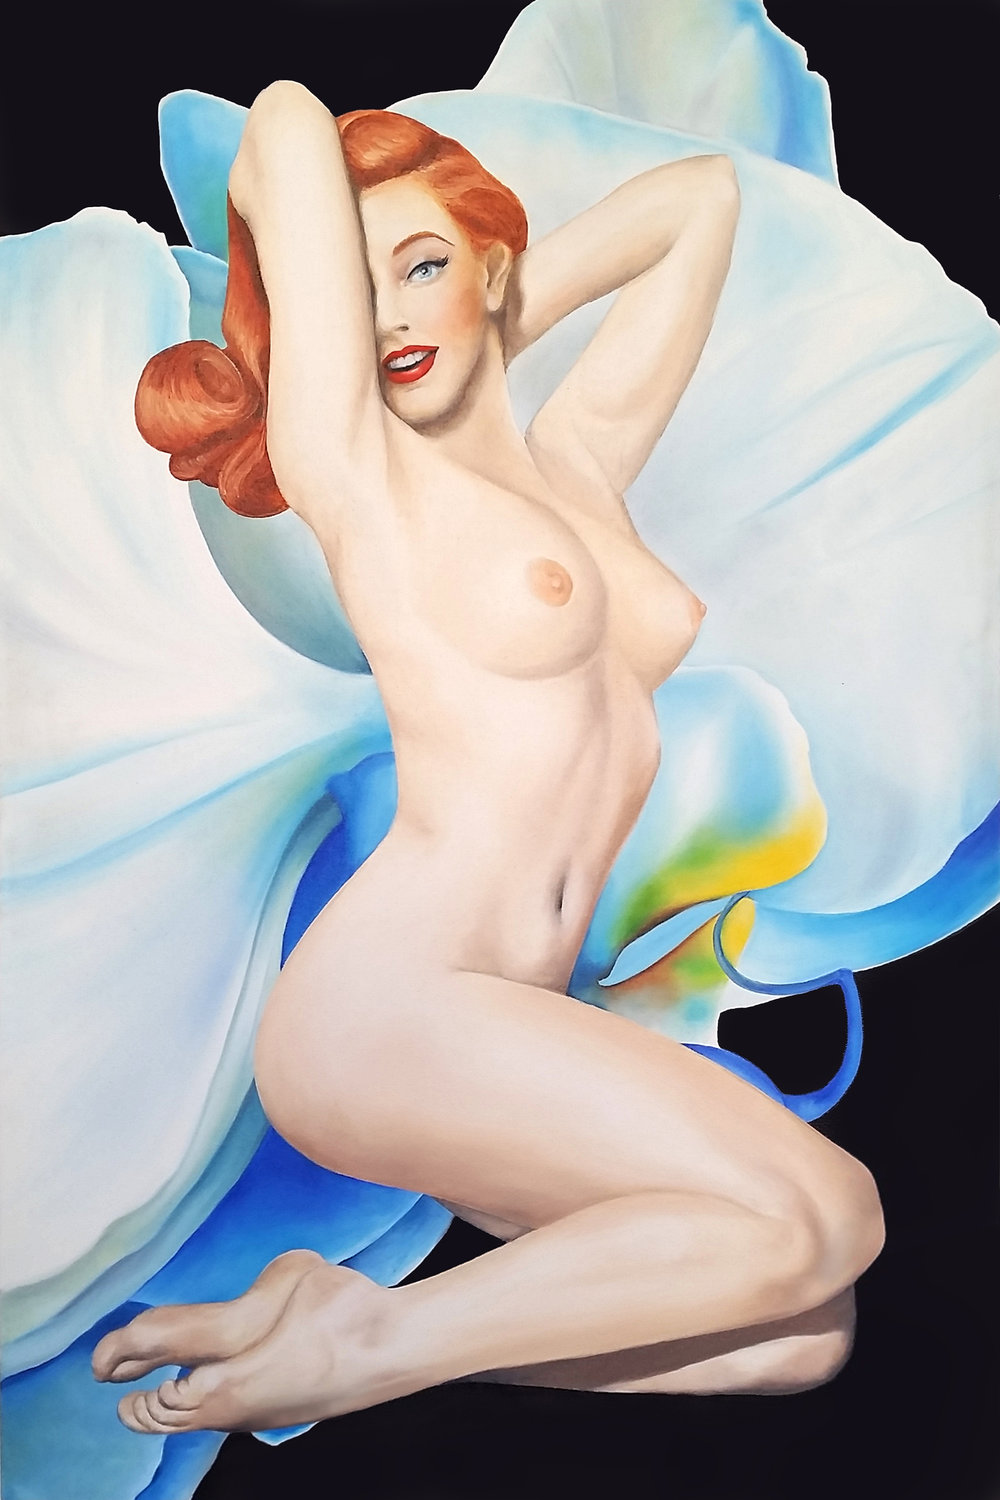 """The Icon"", 2014, Ginger Del Rey  oil on canvas 36"" x 24"" x .6""  $2500  This is the 2nd in my limited series of six pin-up girls set against a Georgia O'Keefe-style backdrop. The idea to marry the two images came from a photo shoot with a natural, fair-skinned redhead who was rare in her loveliness. As I studied her translucent, radiant skin - blushing gently in peach and rose with a faint bluish undertone, I couldn't help but think how very similar her skin was to the delicate petals of an orchid, fragile and rare."